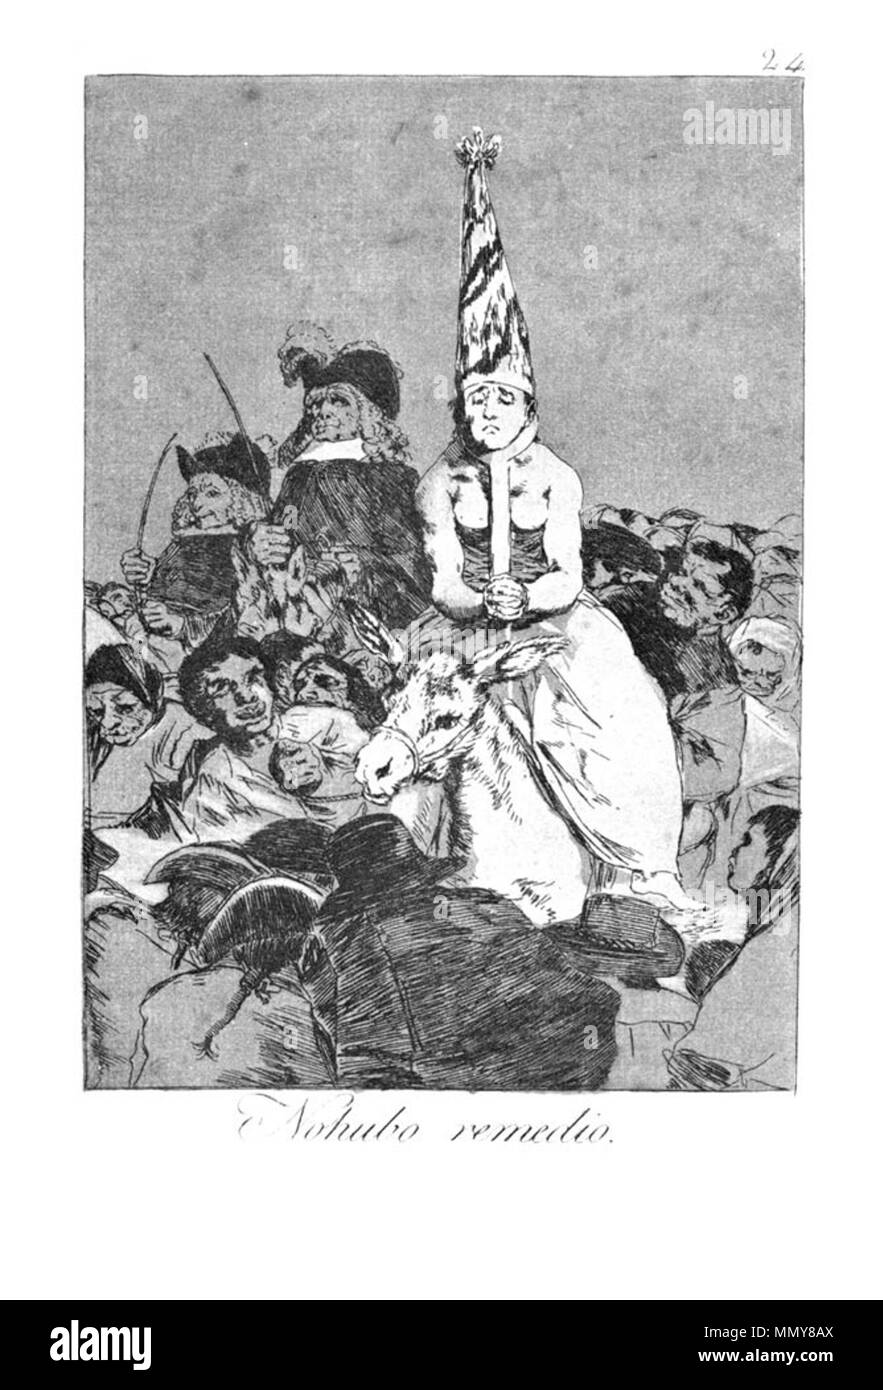 . Los Caprichos is a set of 80 aquatint prints created by Francisco Goya for release in 1799.  . 1799.   Francisco Goya (1746–1828)   Alternative names Francisco Goya Lucientes, Francisco de Goya y Lucientes, Francisco José Goya Lucientes  Description Spanish painter, printmaker, lithographer, engraver and etcher  Date of birth/death 30 March 1746 16 April 1828  Location of birth/death Fuendetodos Bordeaux  Work location Madrid, Zaragoza, Bordeaux  Authority control  : Q5432 VIAF:?54343141 ISNI:?0000 0001 2280 1608 ULAN:?500118936 LCCN:?n79003363 NLA:?36545788 WorldCat Goya - Caprichos (24 - Stock Image